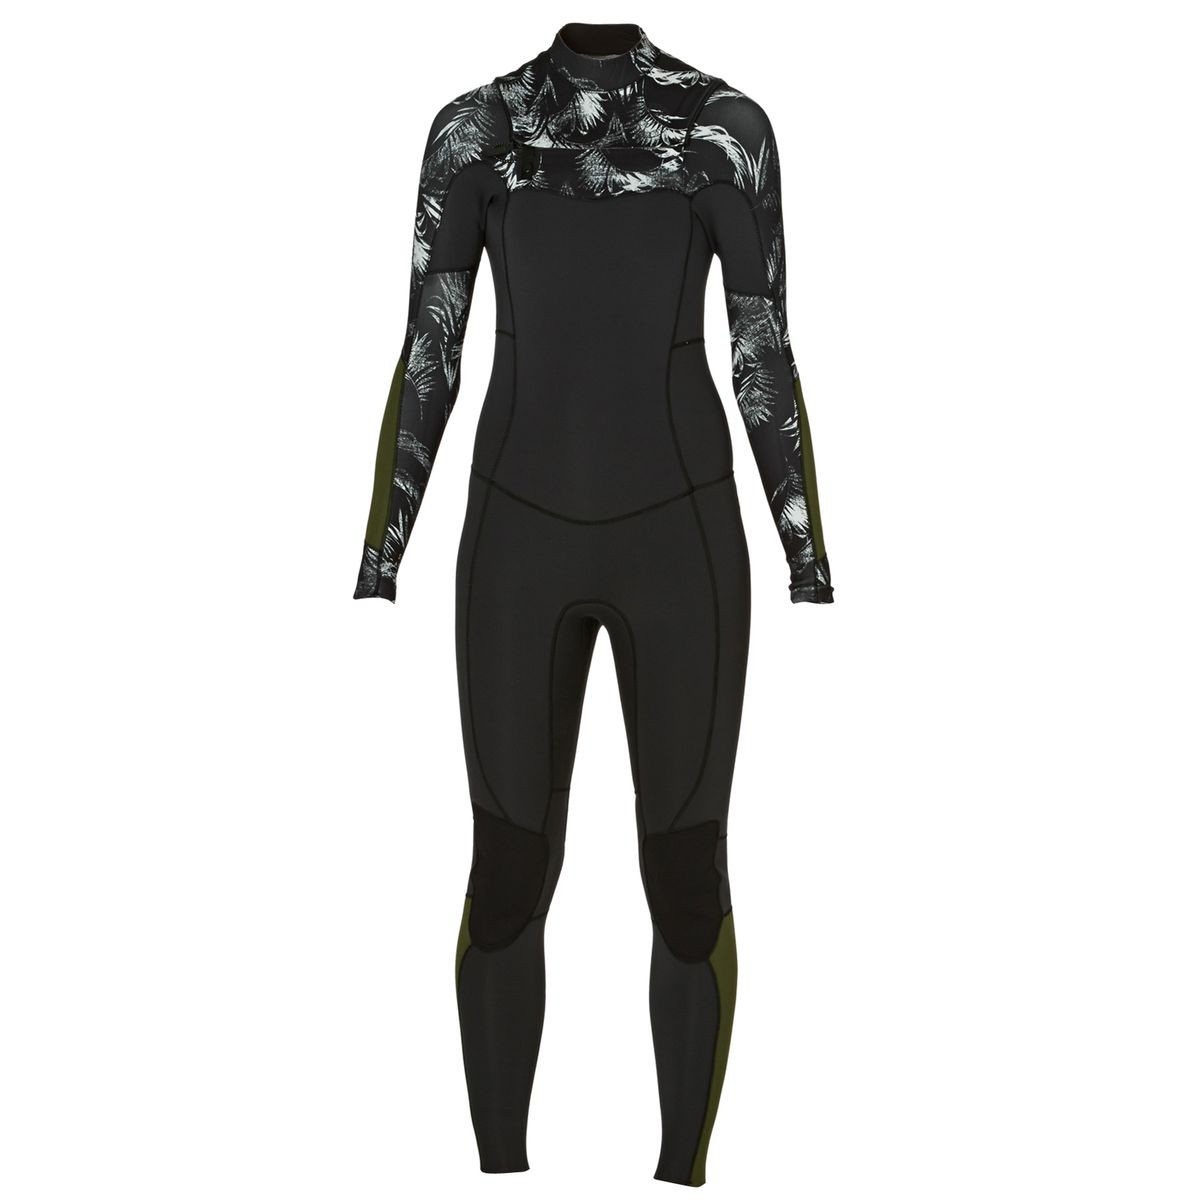 Billabong Womens Surf Capsule Salty Dayz 3/2mm Chest Zip Wetsuit - Black Sands